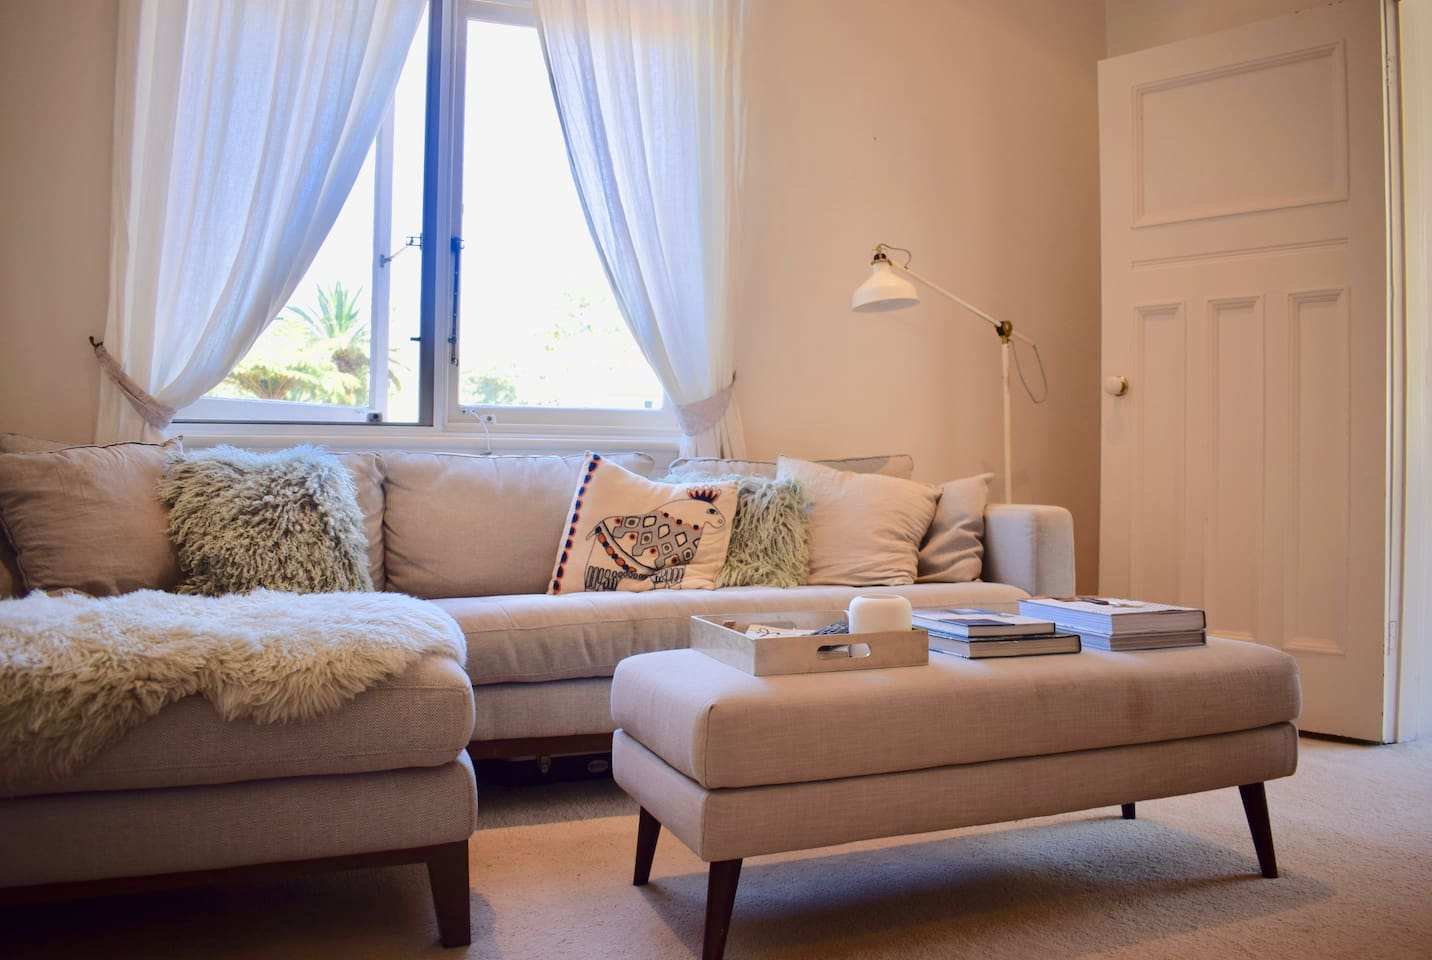 Comfortable and cute living area